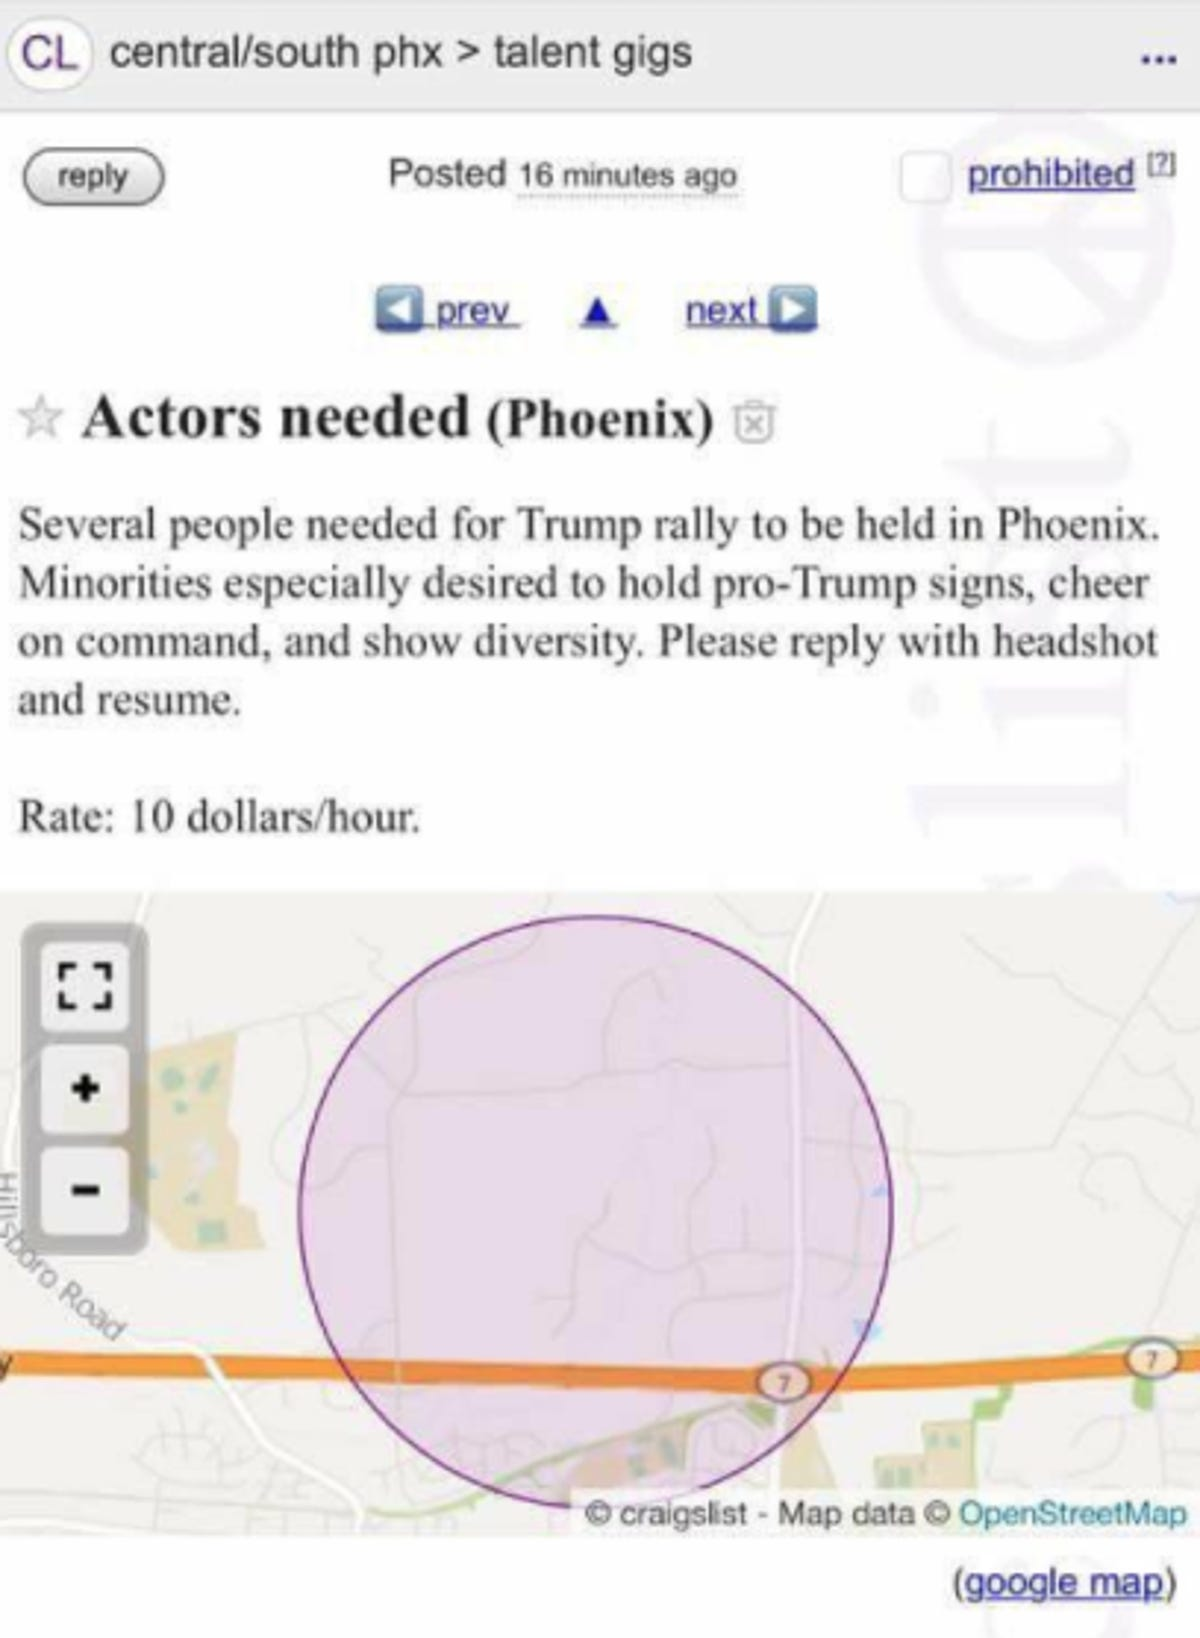 Mystery Craigslist ad offers pay for Trump support at